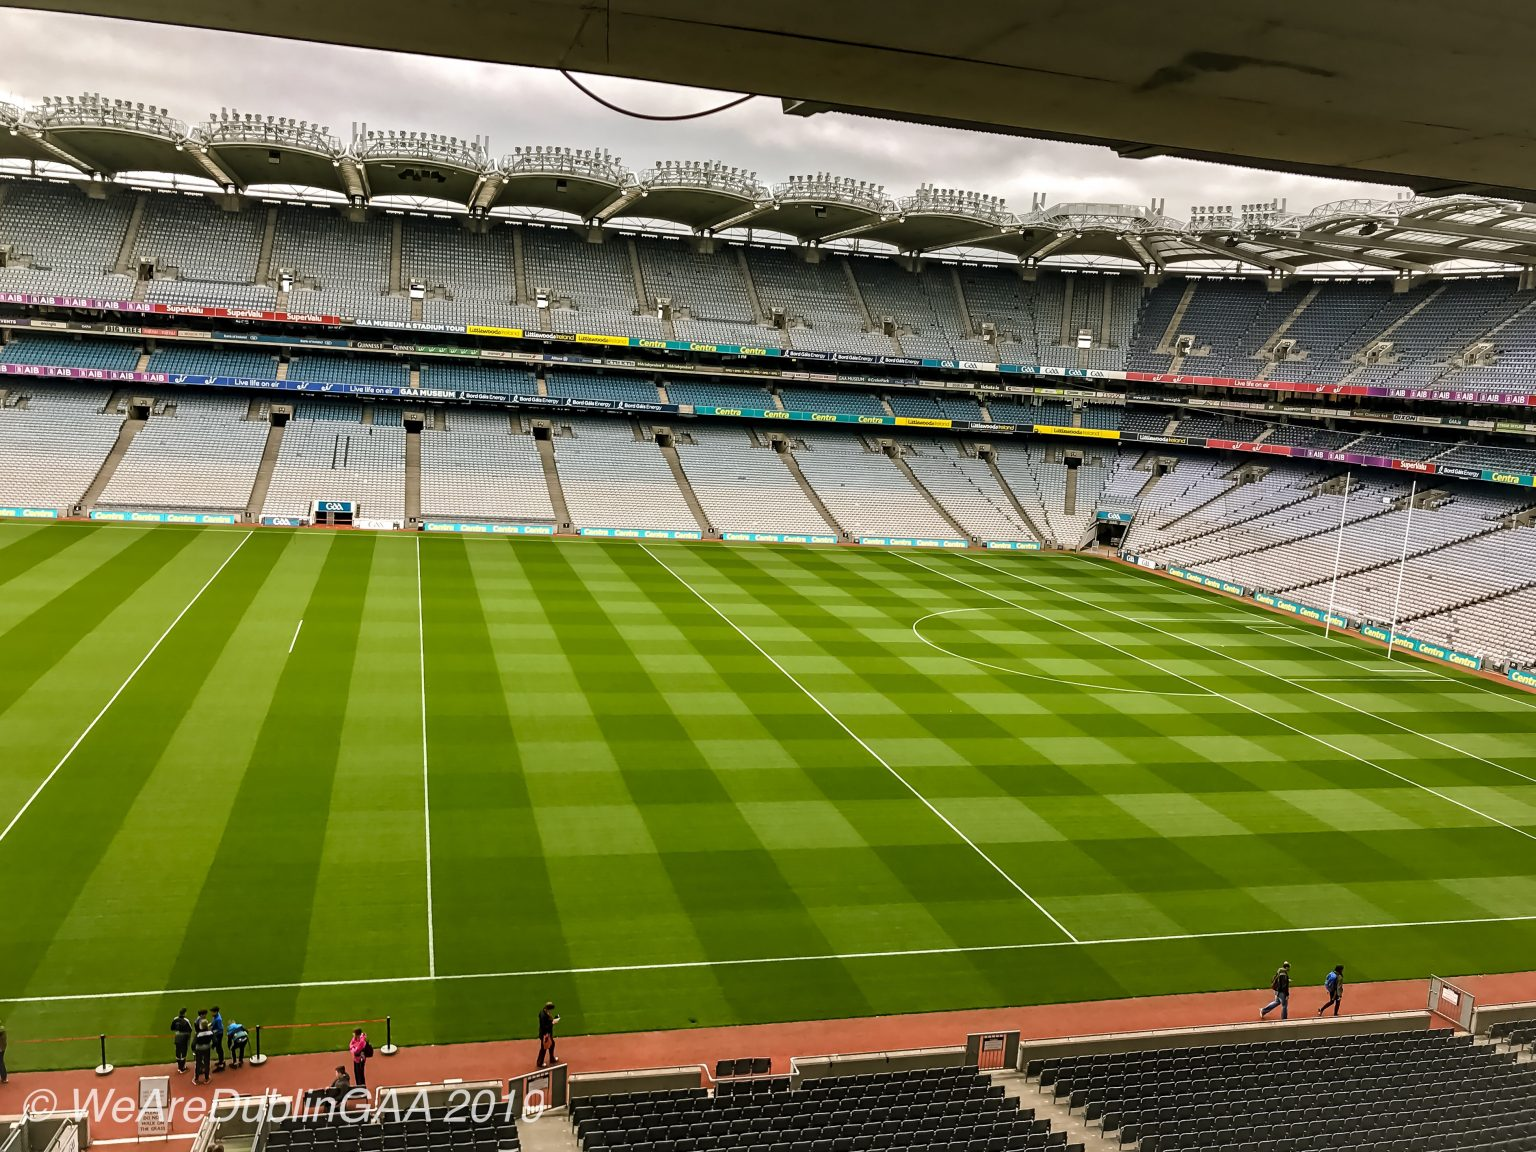 Image of Croke Park Stadium where Tyrone manager Mickey Harte is releshing playing Dublin